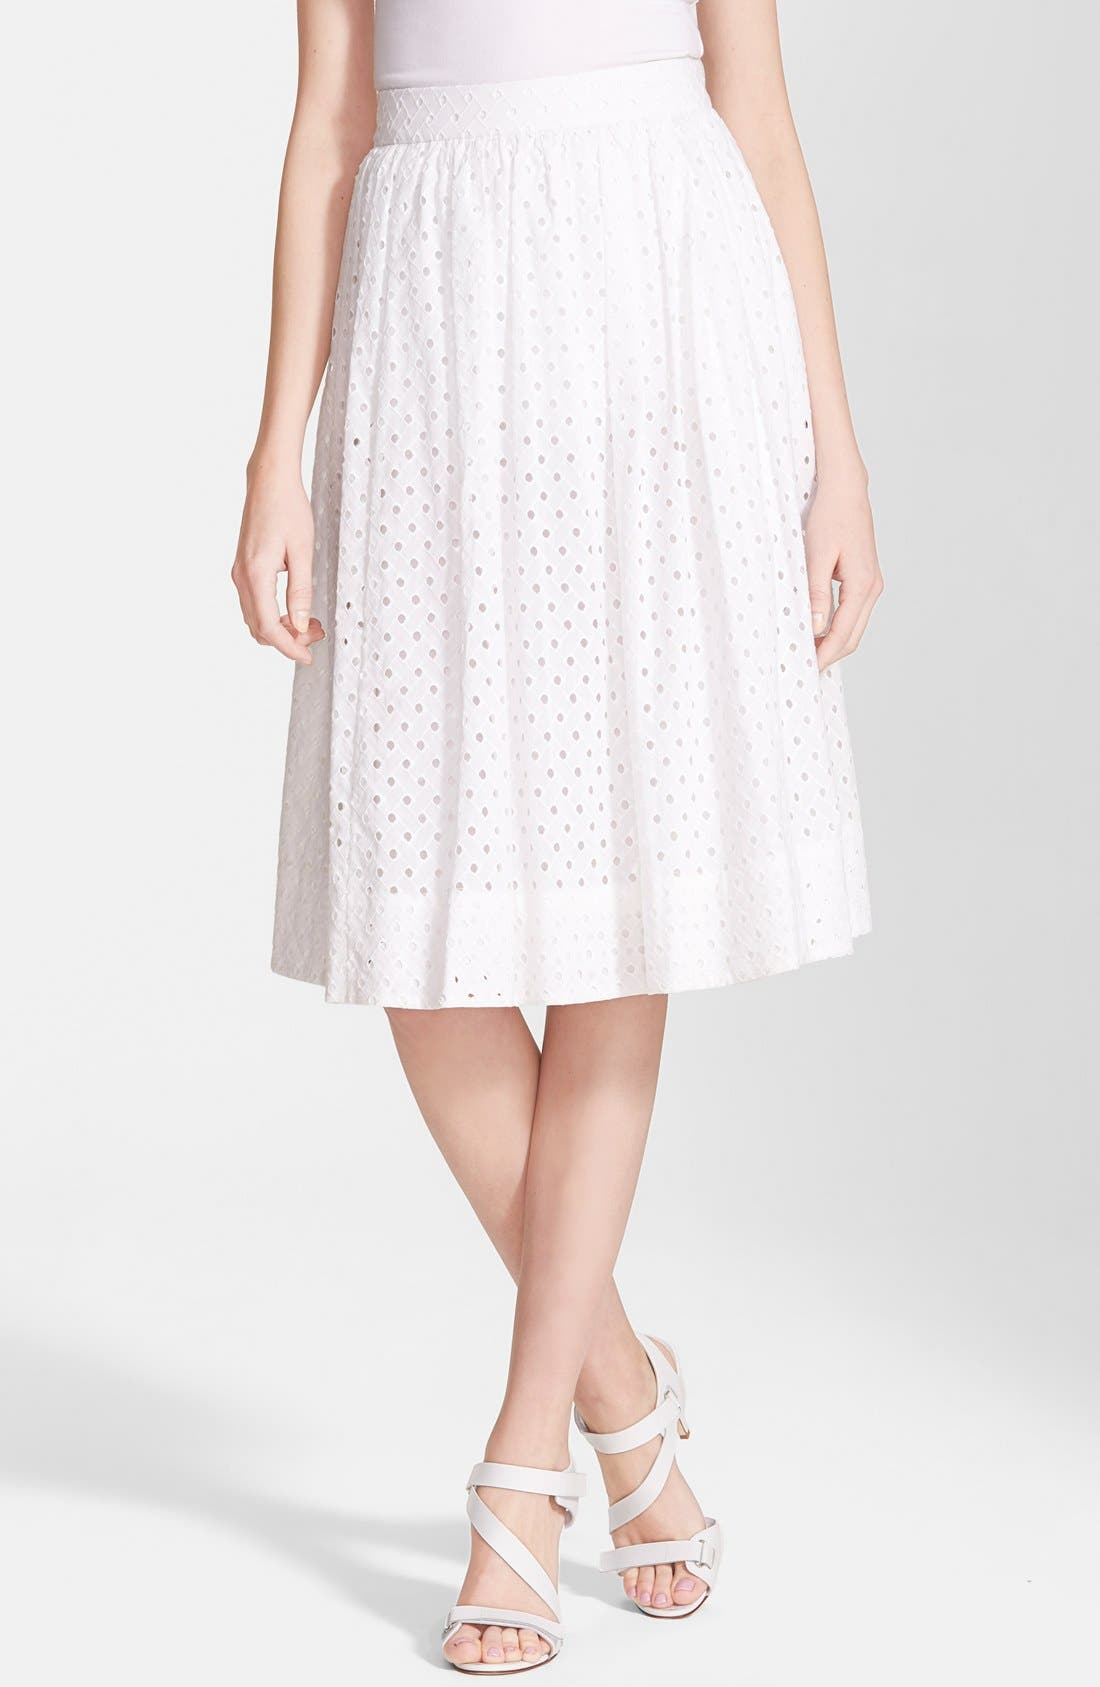 Alternate Image 1 Selected - kate spade new york pleated eyelet a-line skirt